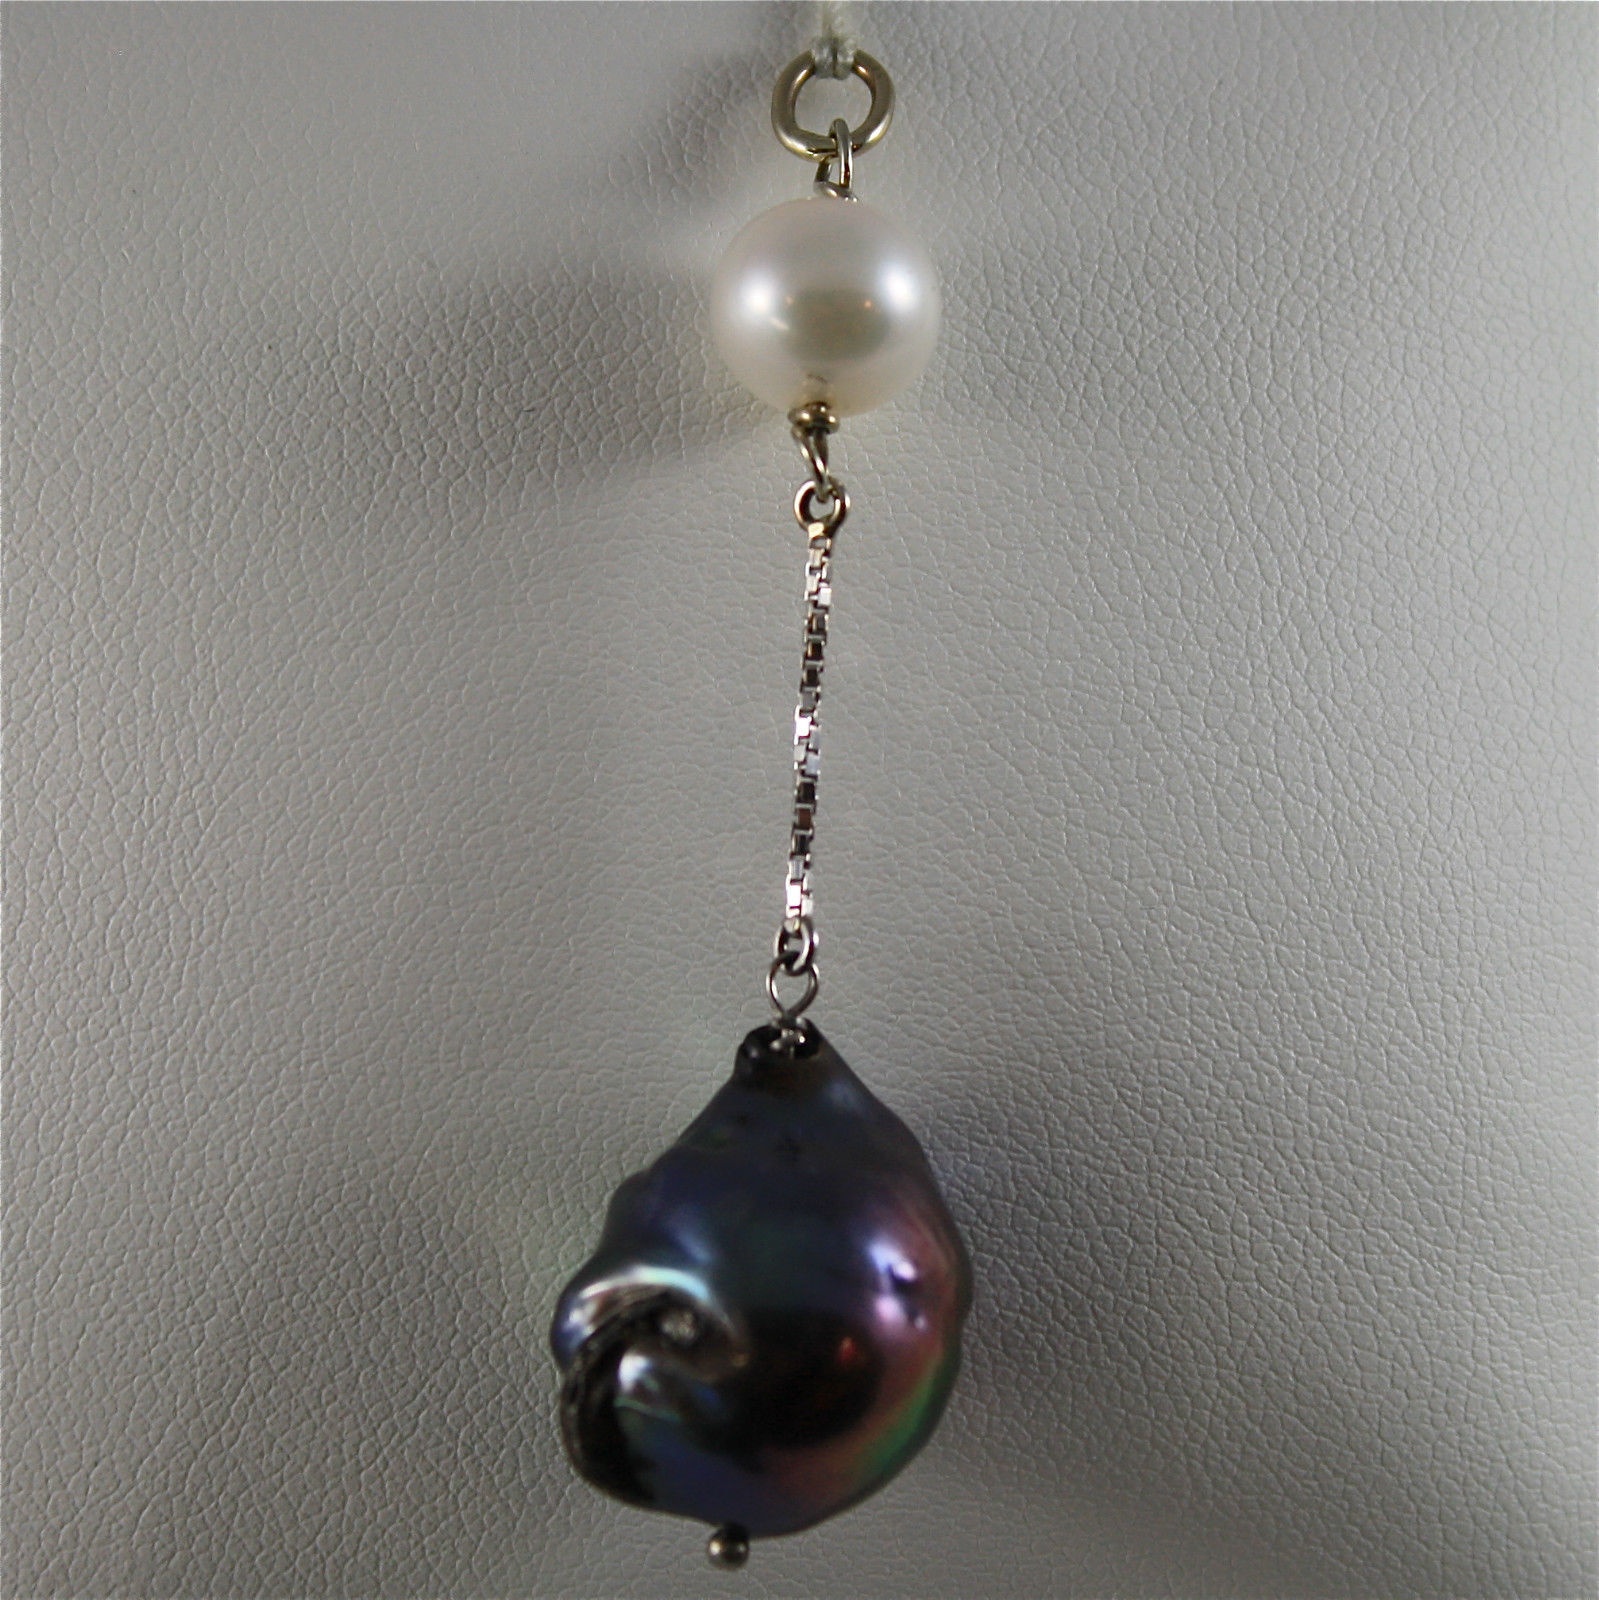 White Gold Pendant 750, 18k, White Pearl and a Black Pearl Baroque,